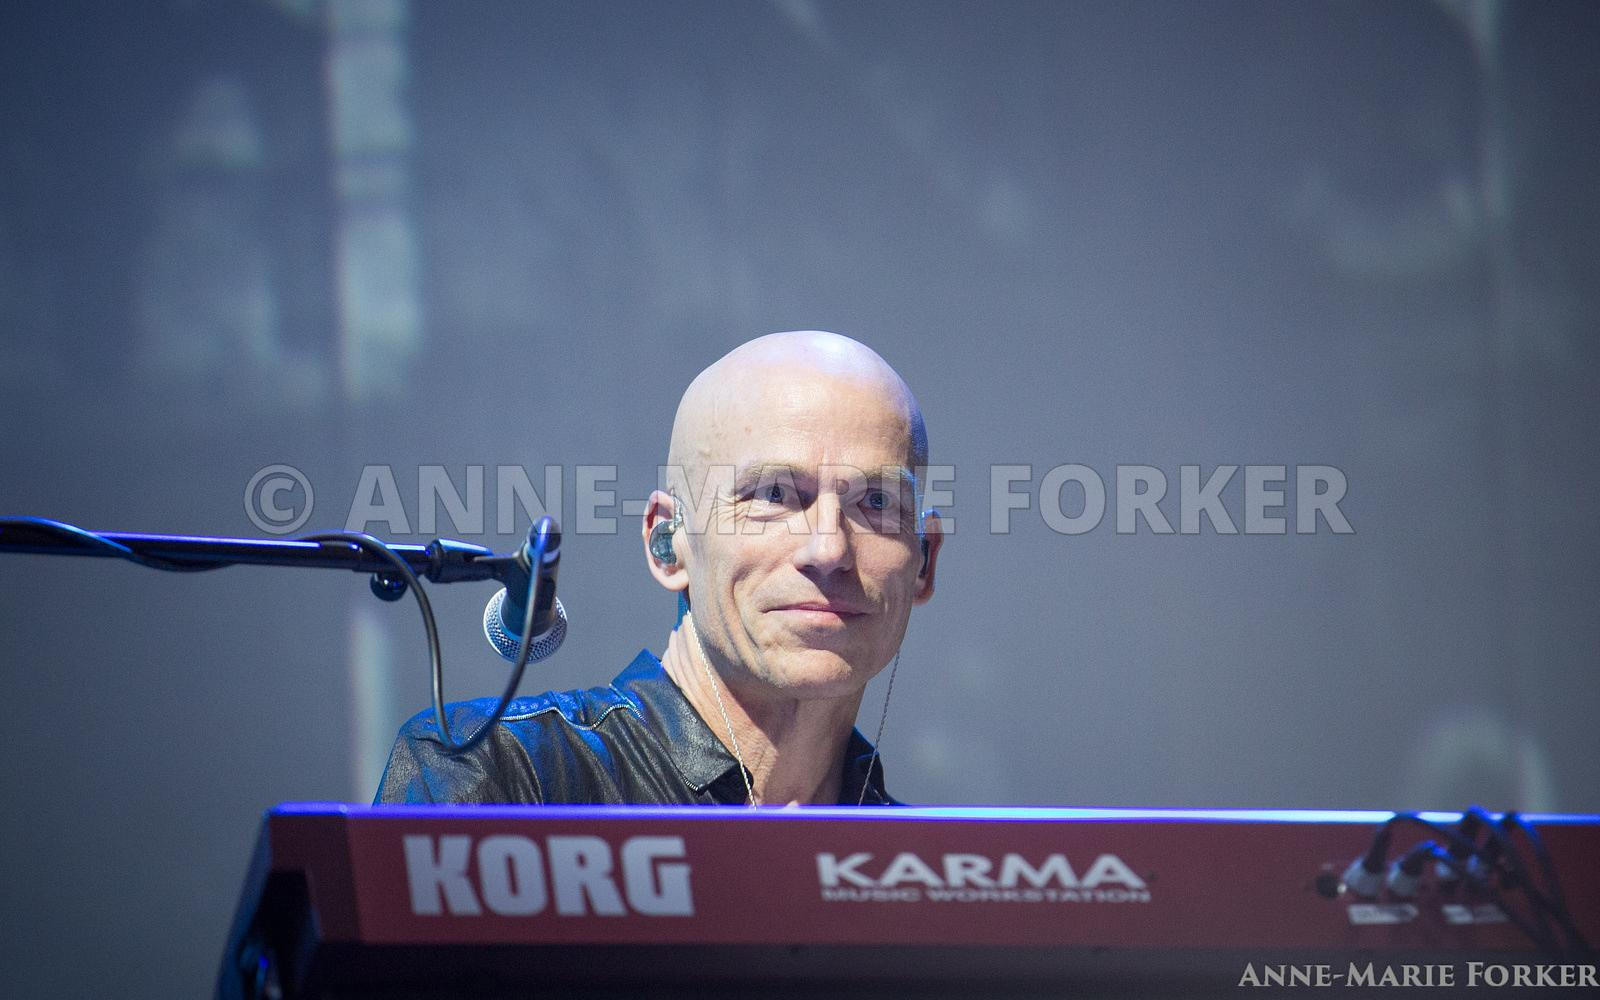 Marillion_-_Bristol_-_AM_Forker-2175